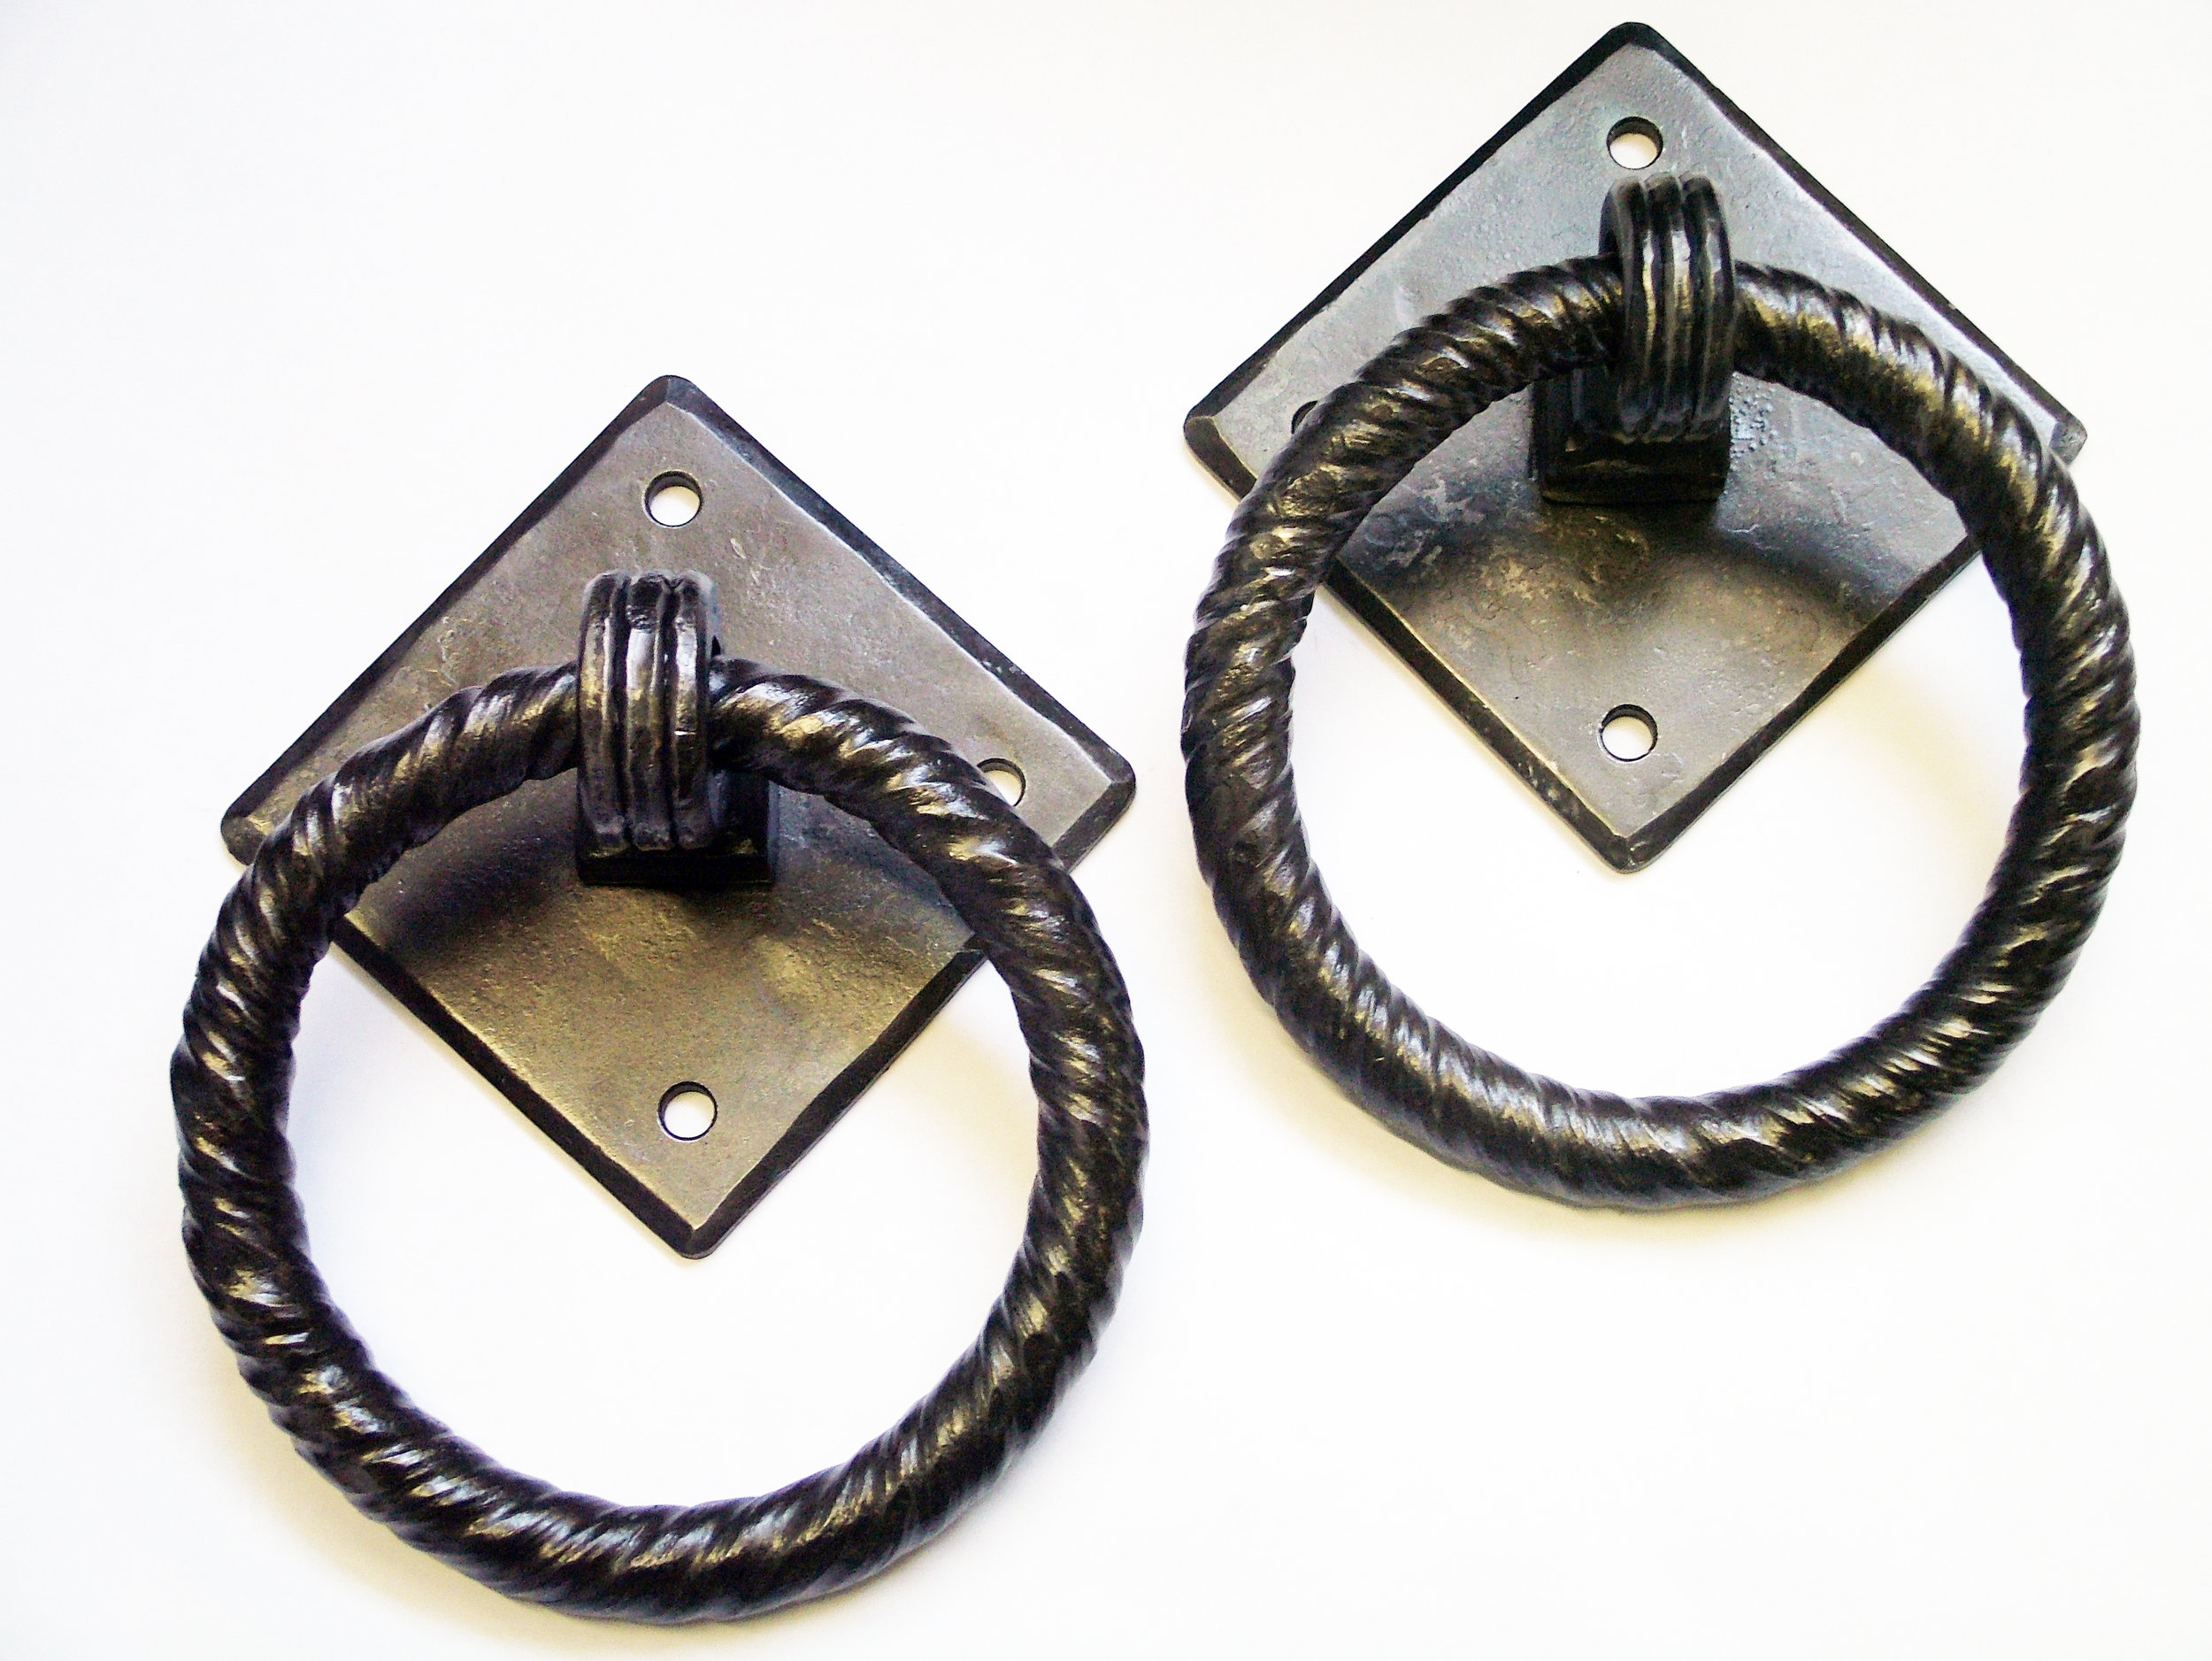 Horse Tie Rings Before Install